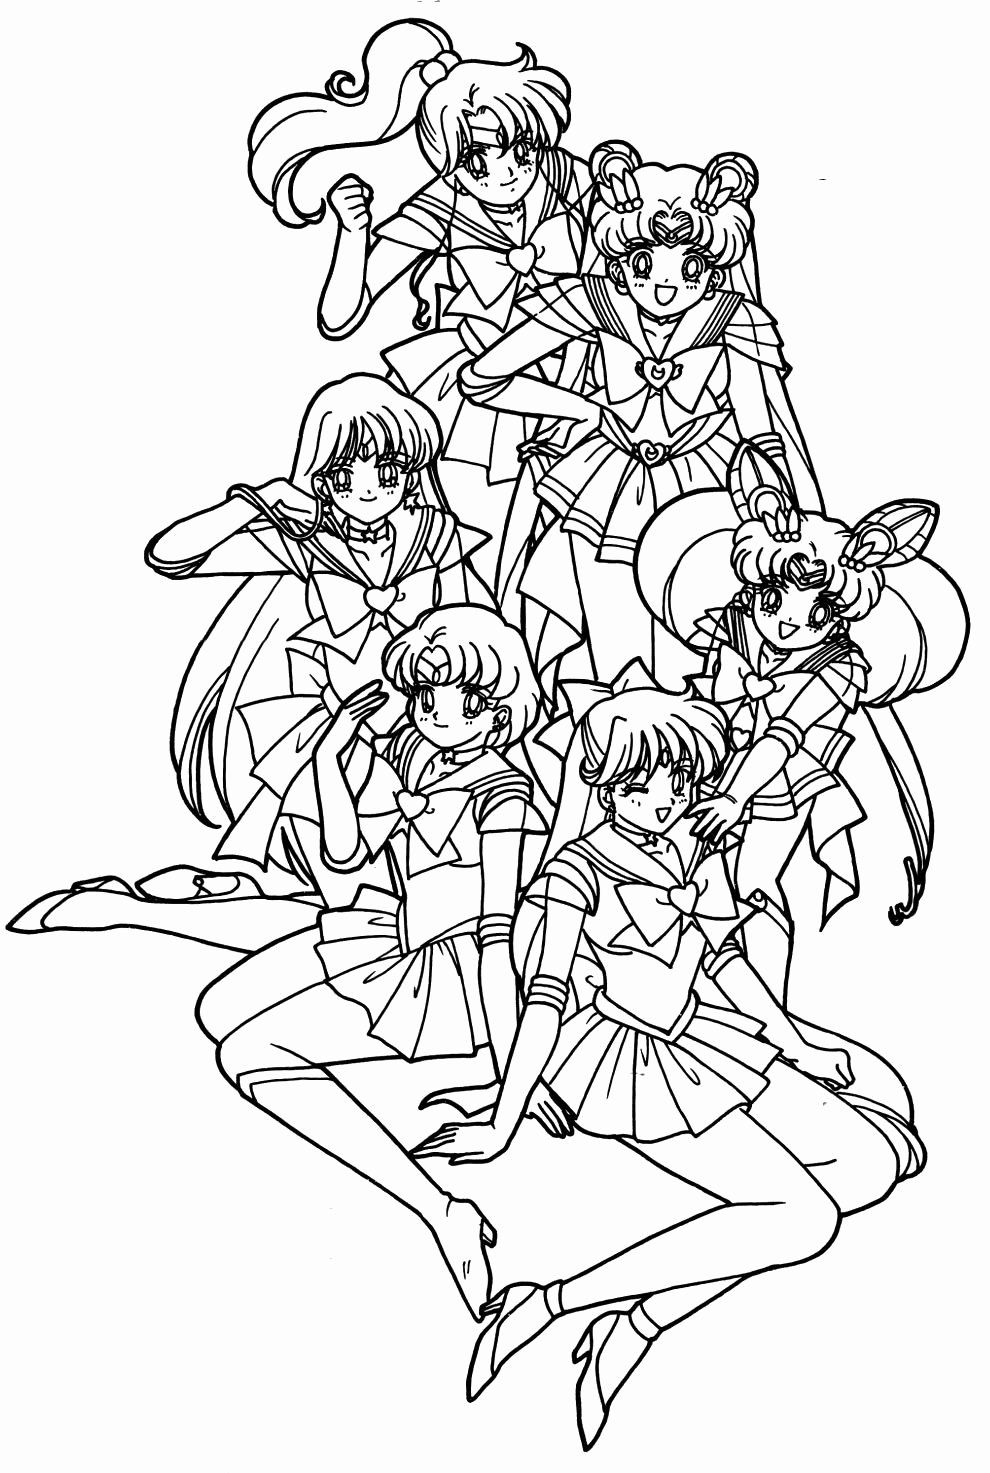 Sailor Moon Coloring Page Elegant Sailor Moon Really Like With Her Friend Coloring Pages Sailor Moon Coloring Pages Moon Coloring Pages Coloring Book Pages